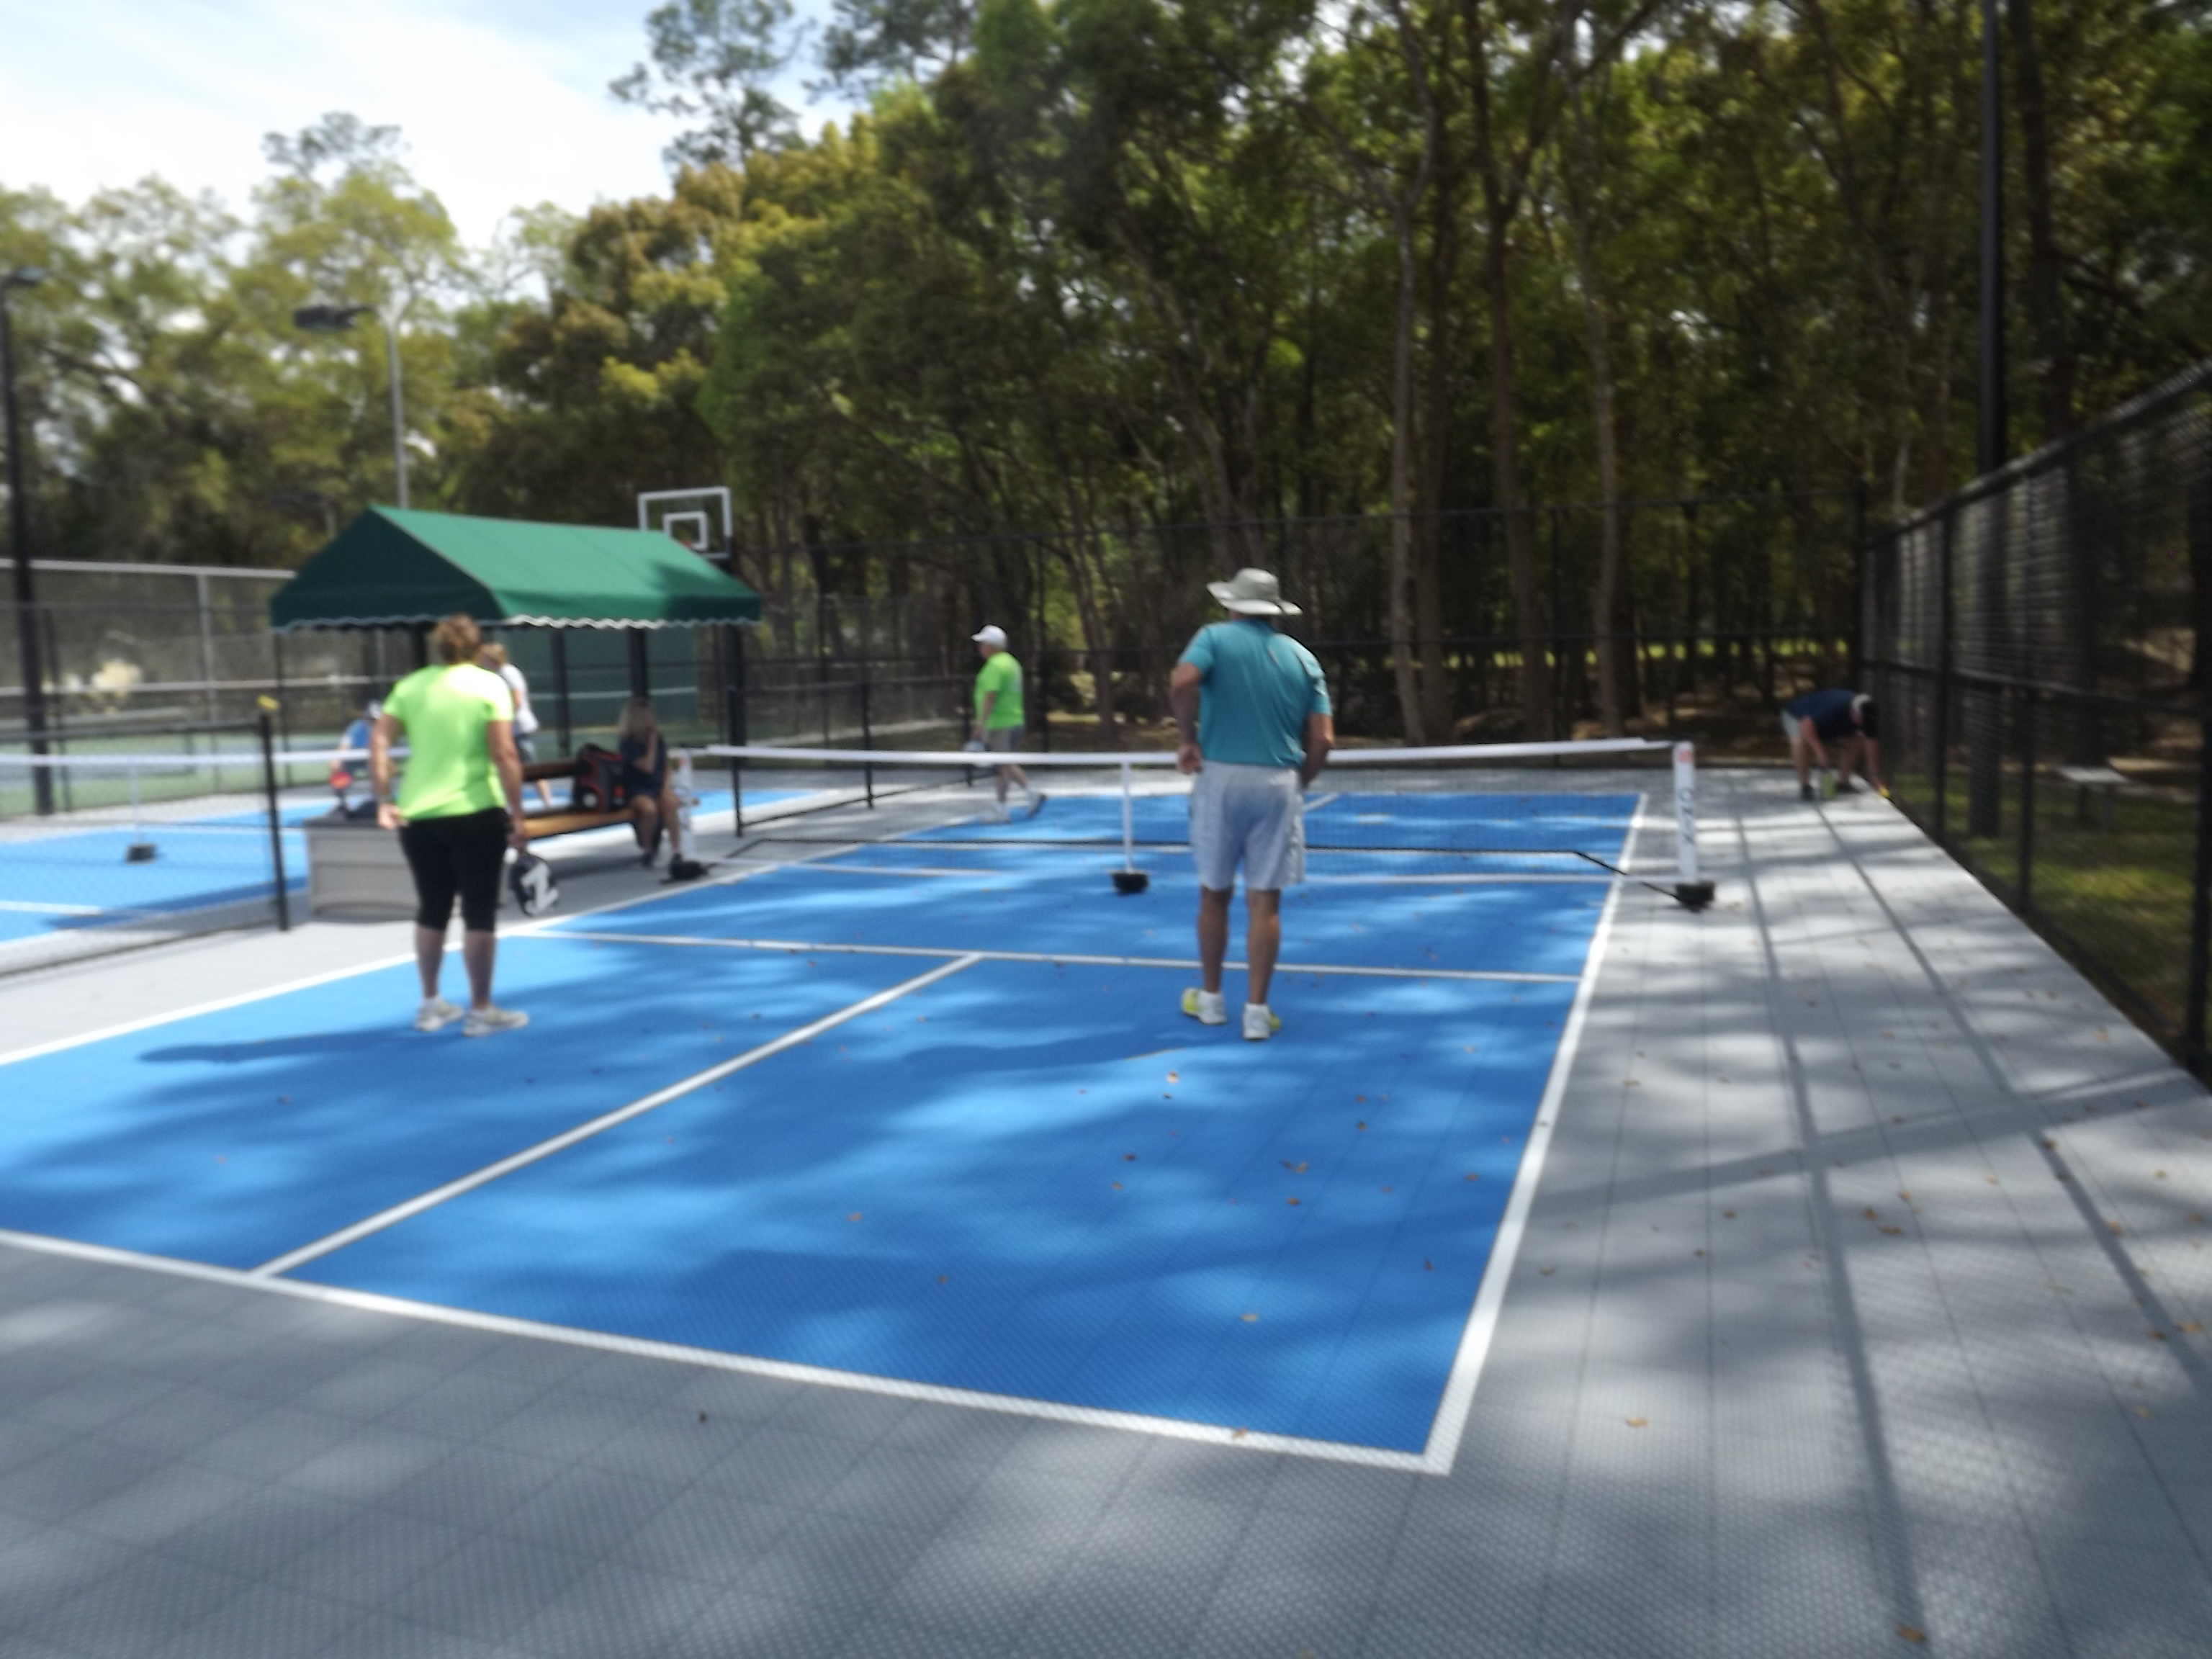 Pickle Ball game in progress